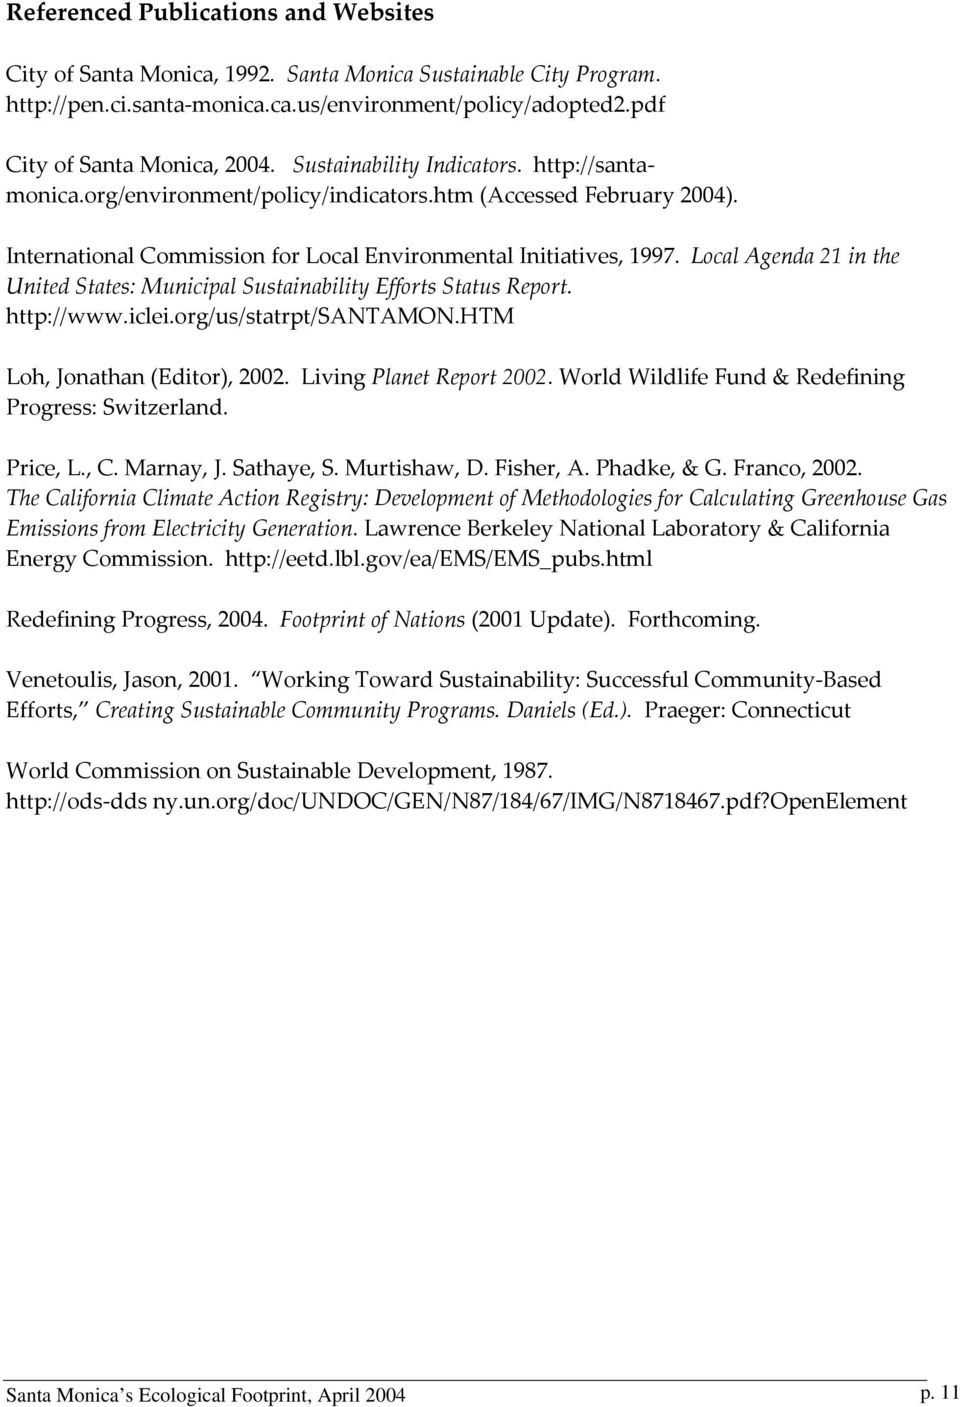 Local Agenda 21 in the United States: Municipal Sustainability Efforts Status Report. http://www.iclei.org/us/statrpt/santamon.htm Loh, Jonathan (Editor), 2002. Living Planet Report 2002.